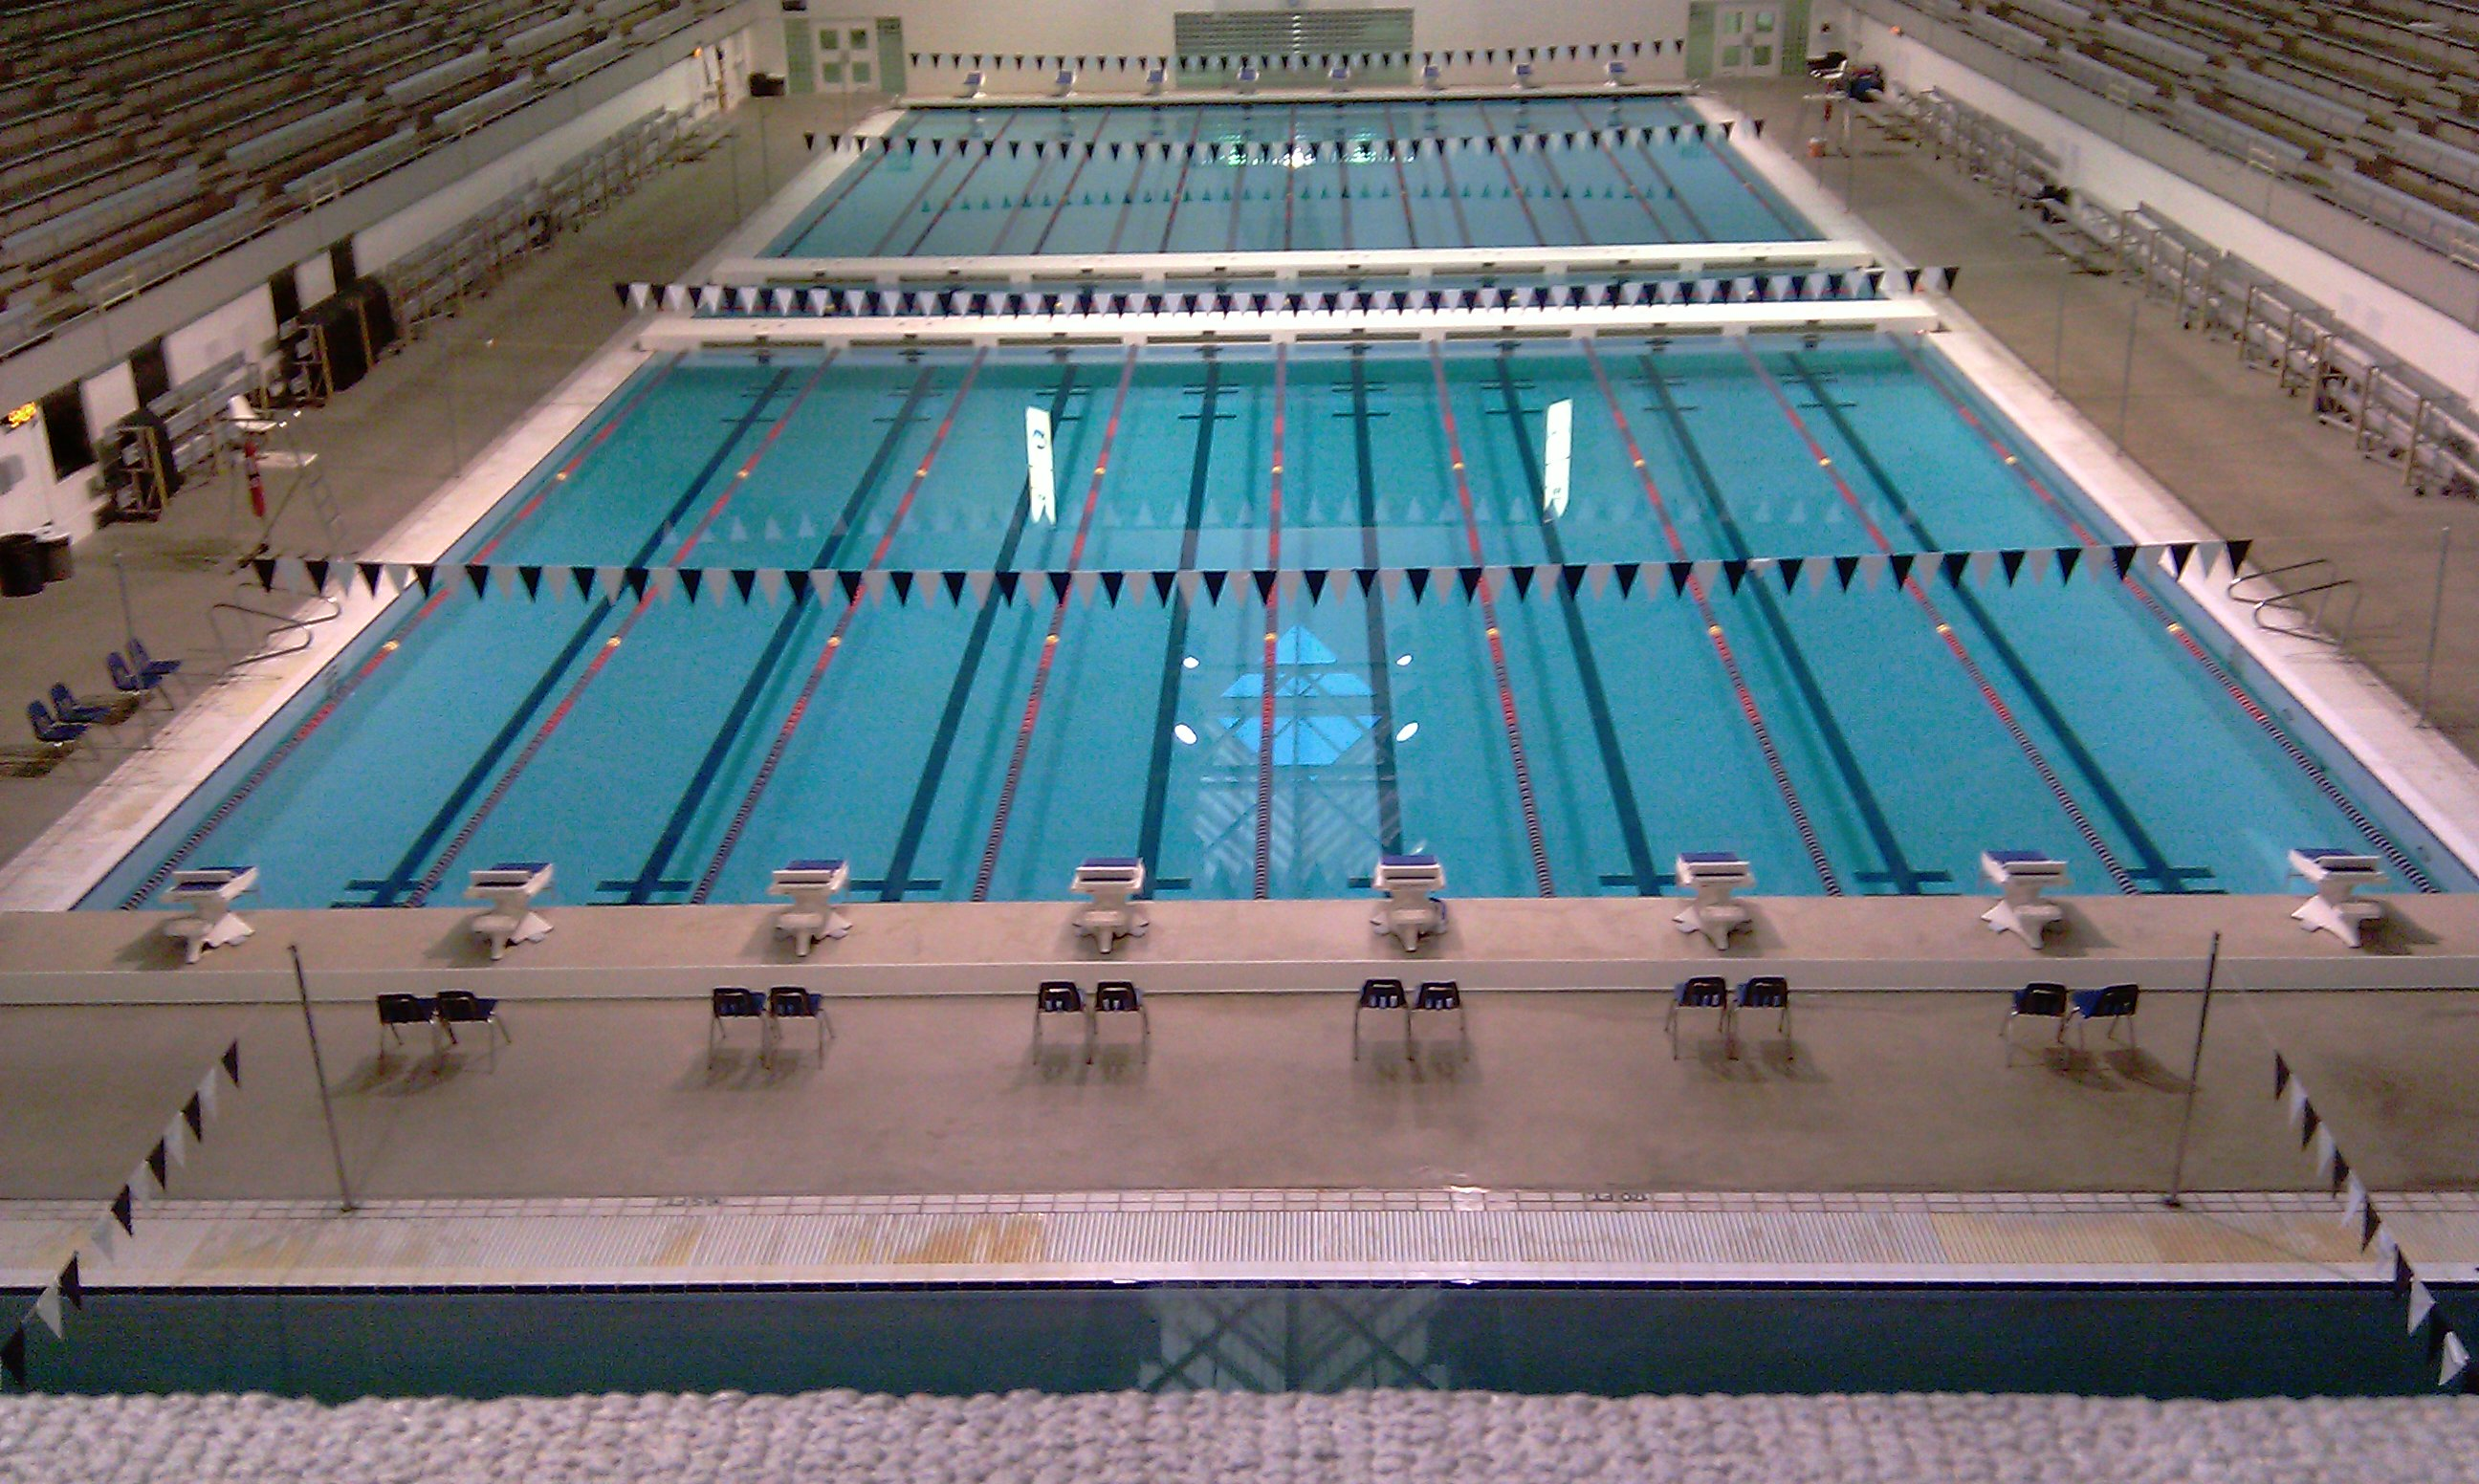 Federal Way – King County Aquatic Center